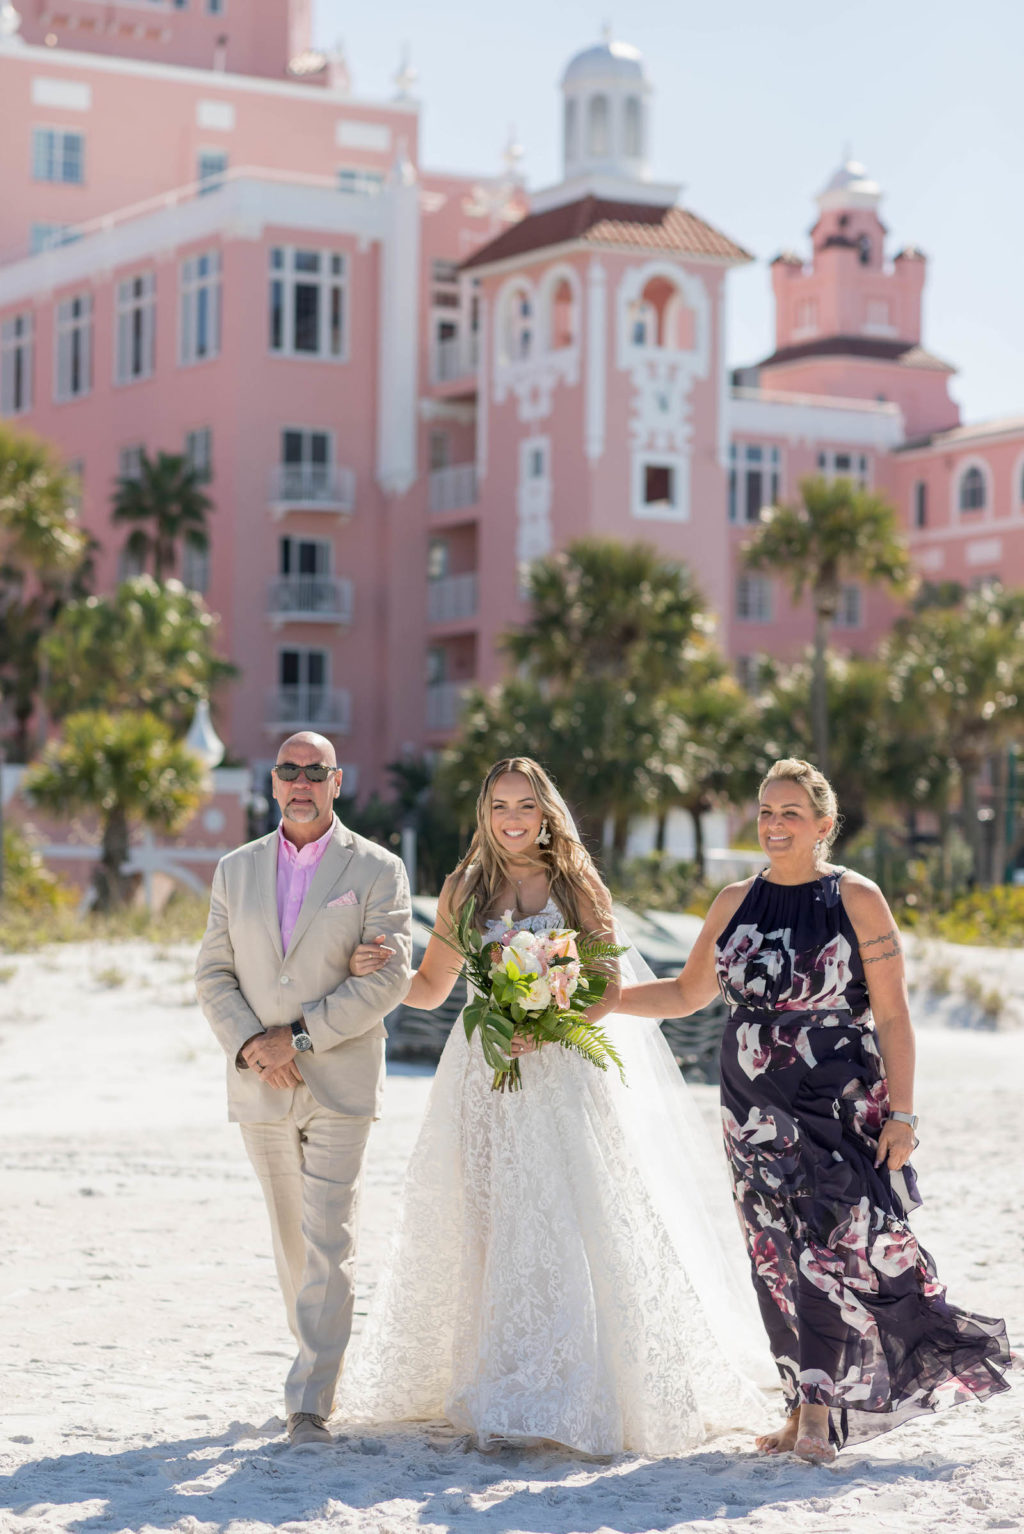 Bride Walking Down the Aisle during Outdoor Beach Ceremony at St. Pete Beach Wedding Venue The Don CeSar Pink Palace | Monique Lhuillier Designer Wedding Dress A Line Ballgown Lace Bridal Gown